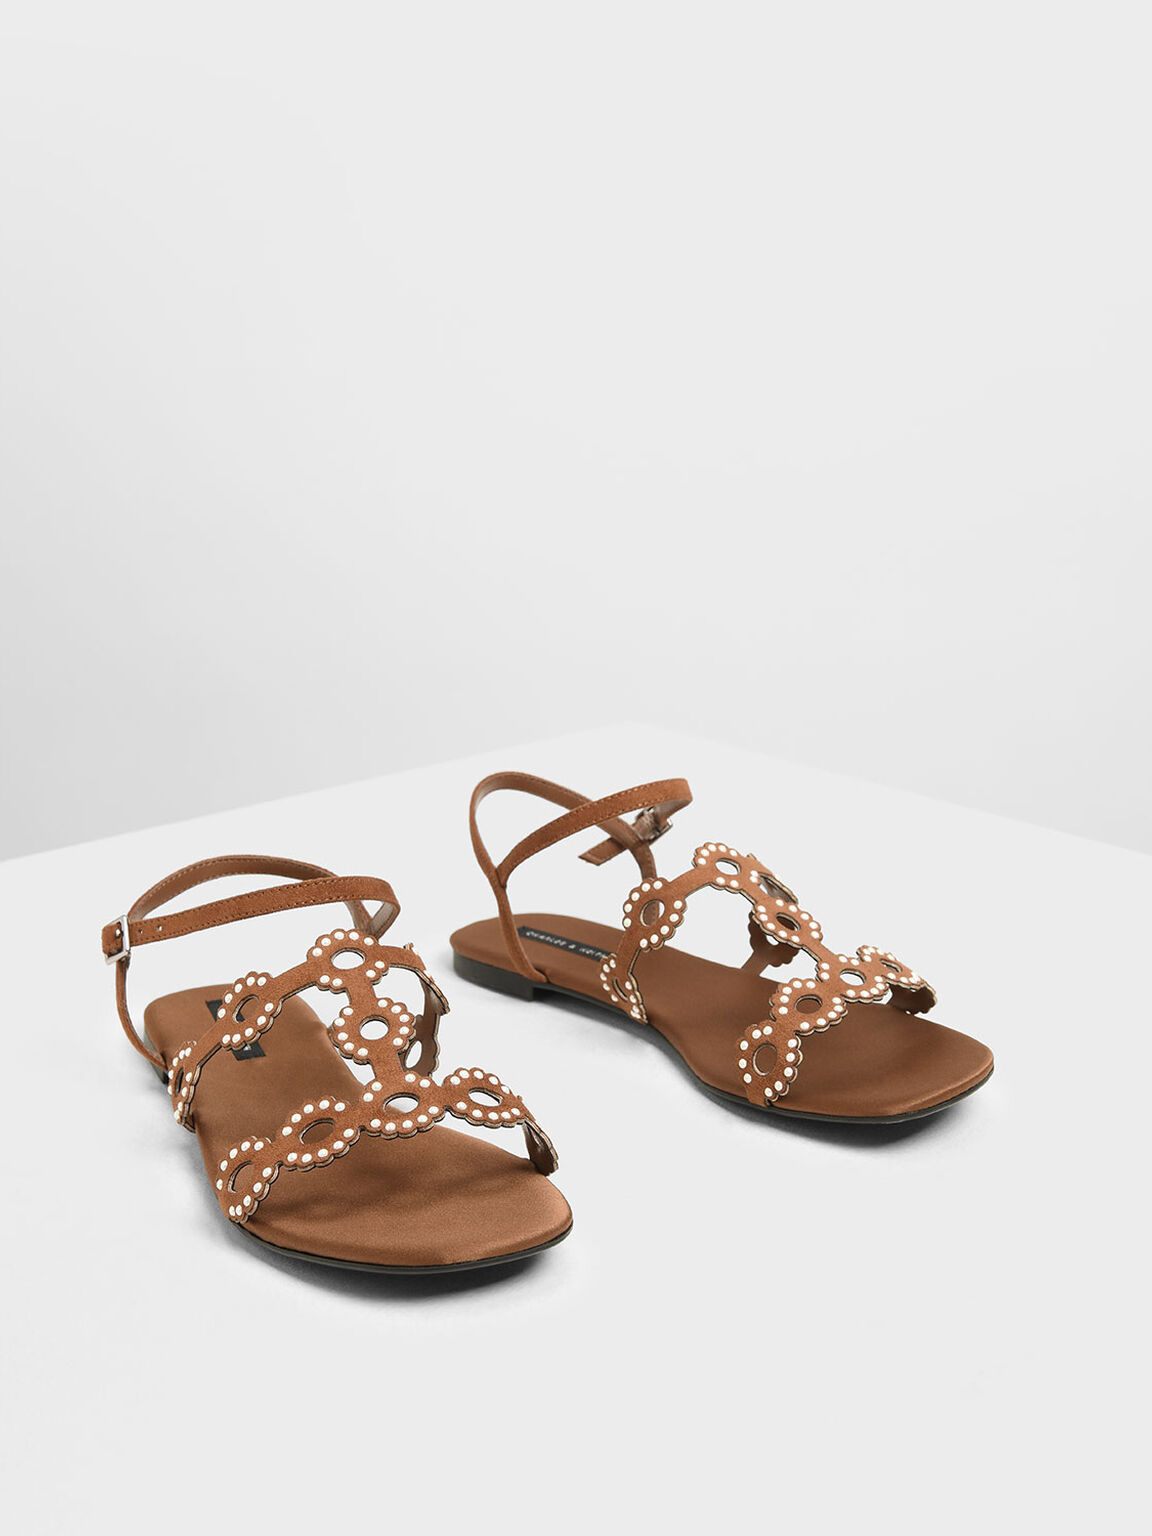 Cut-Out Embellished Sandals, Camel, hi-res